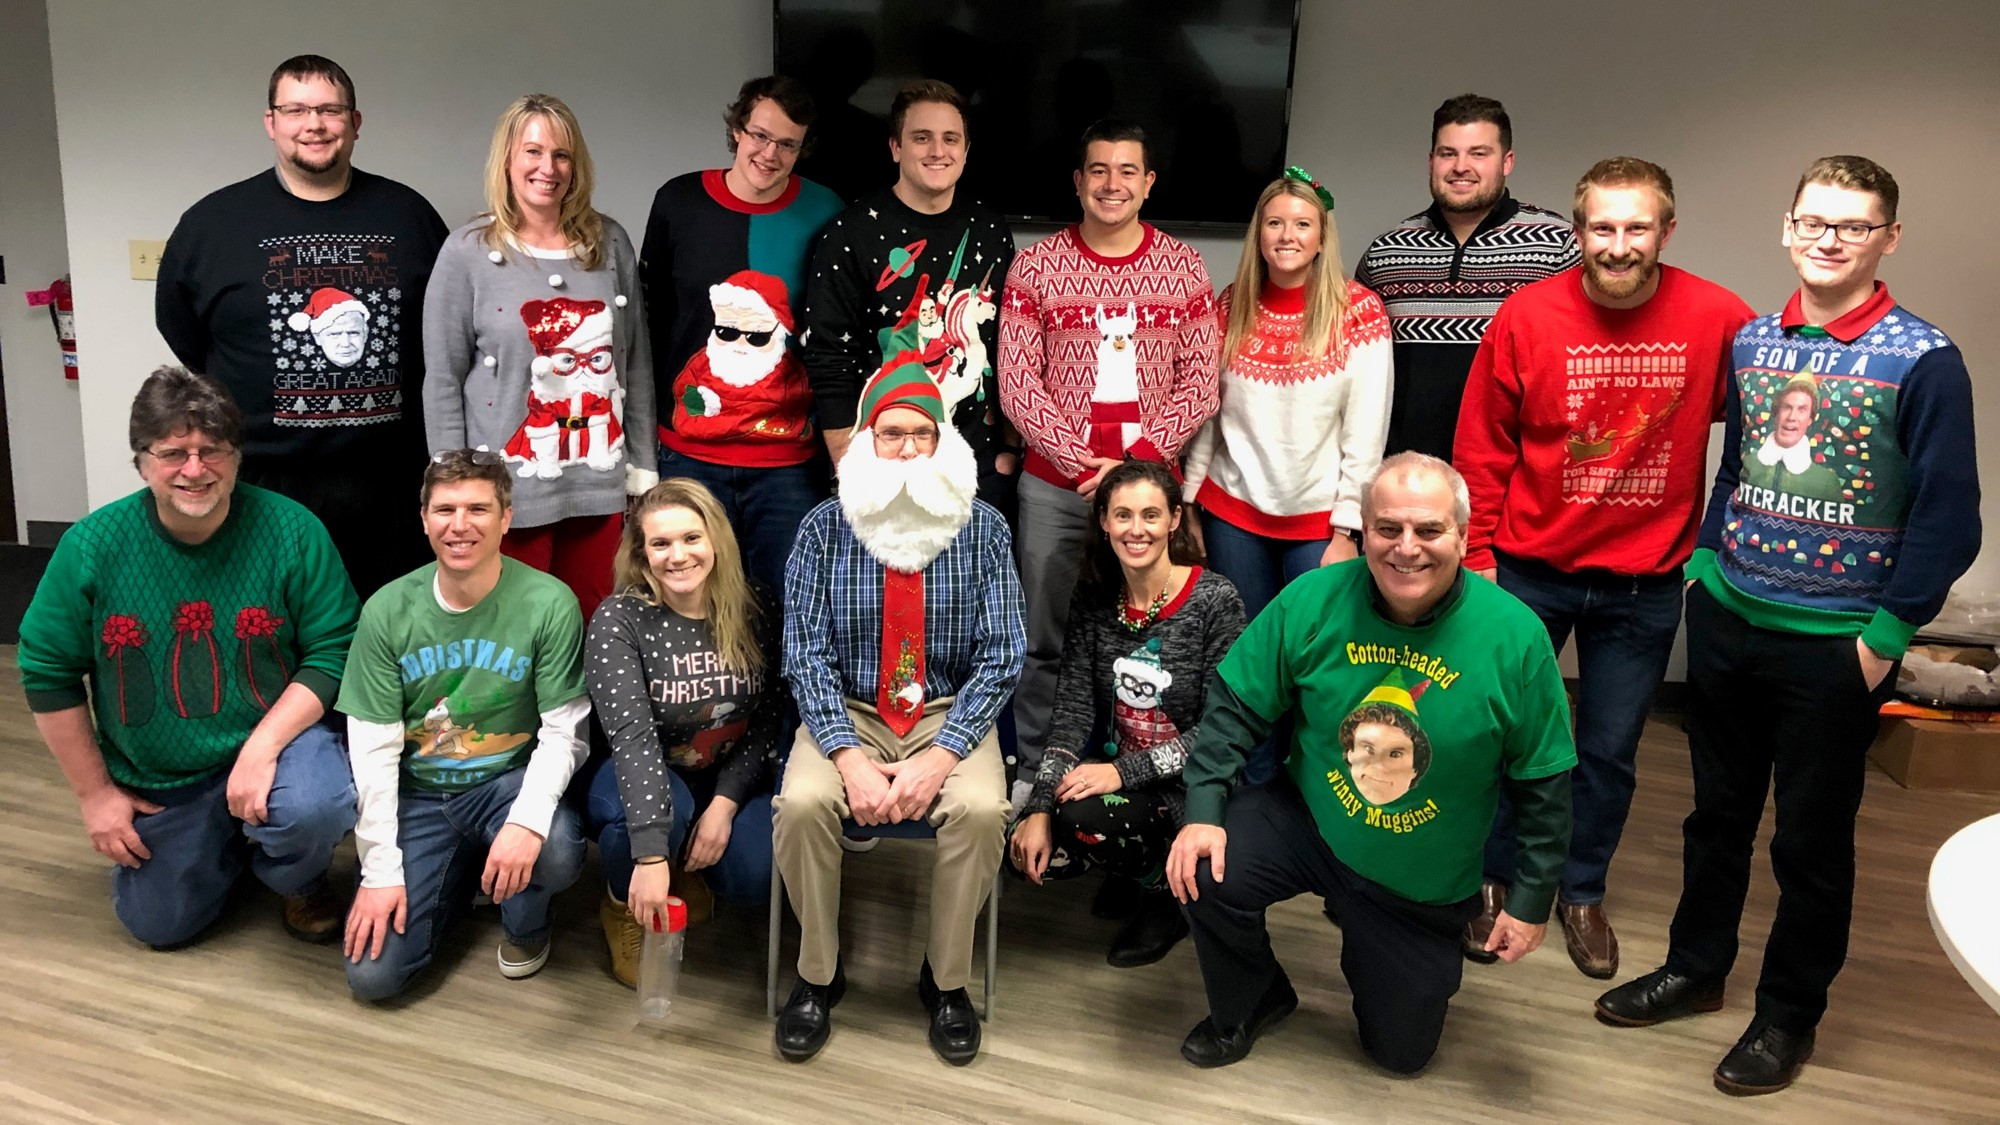 Christmas Sweater Pic of some of the Vizion360 Team